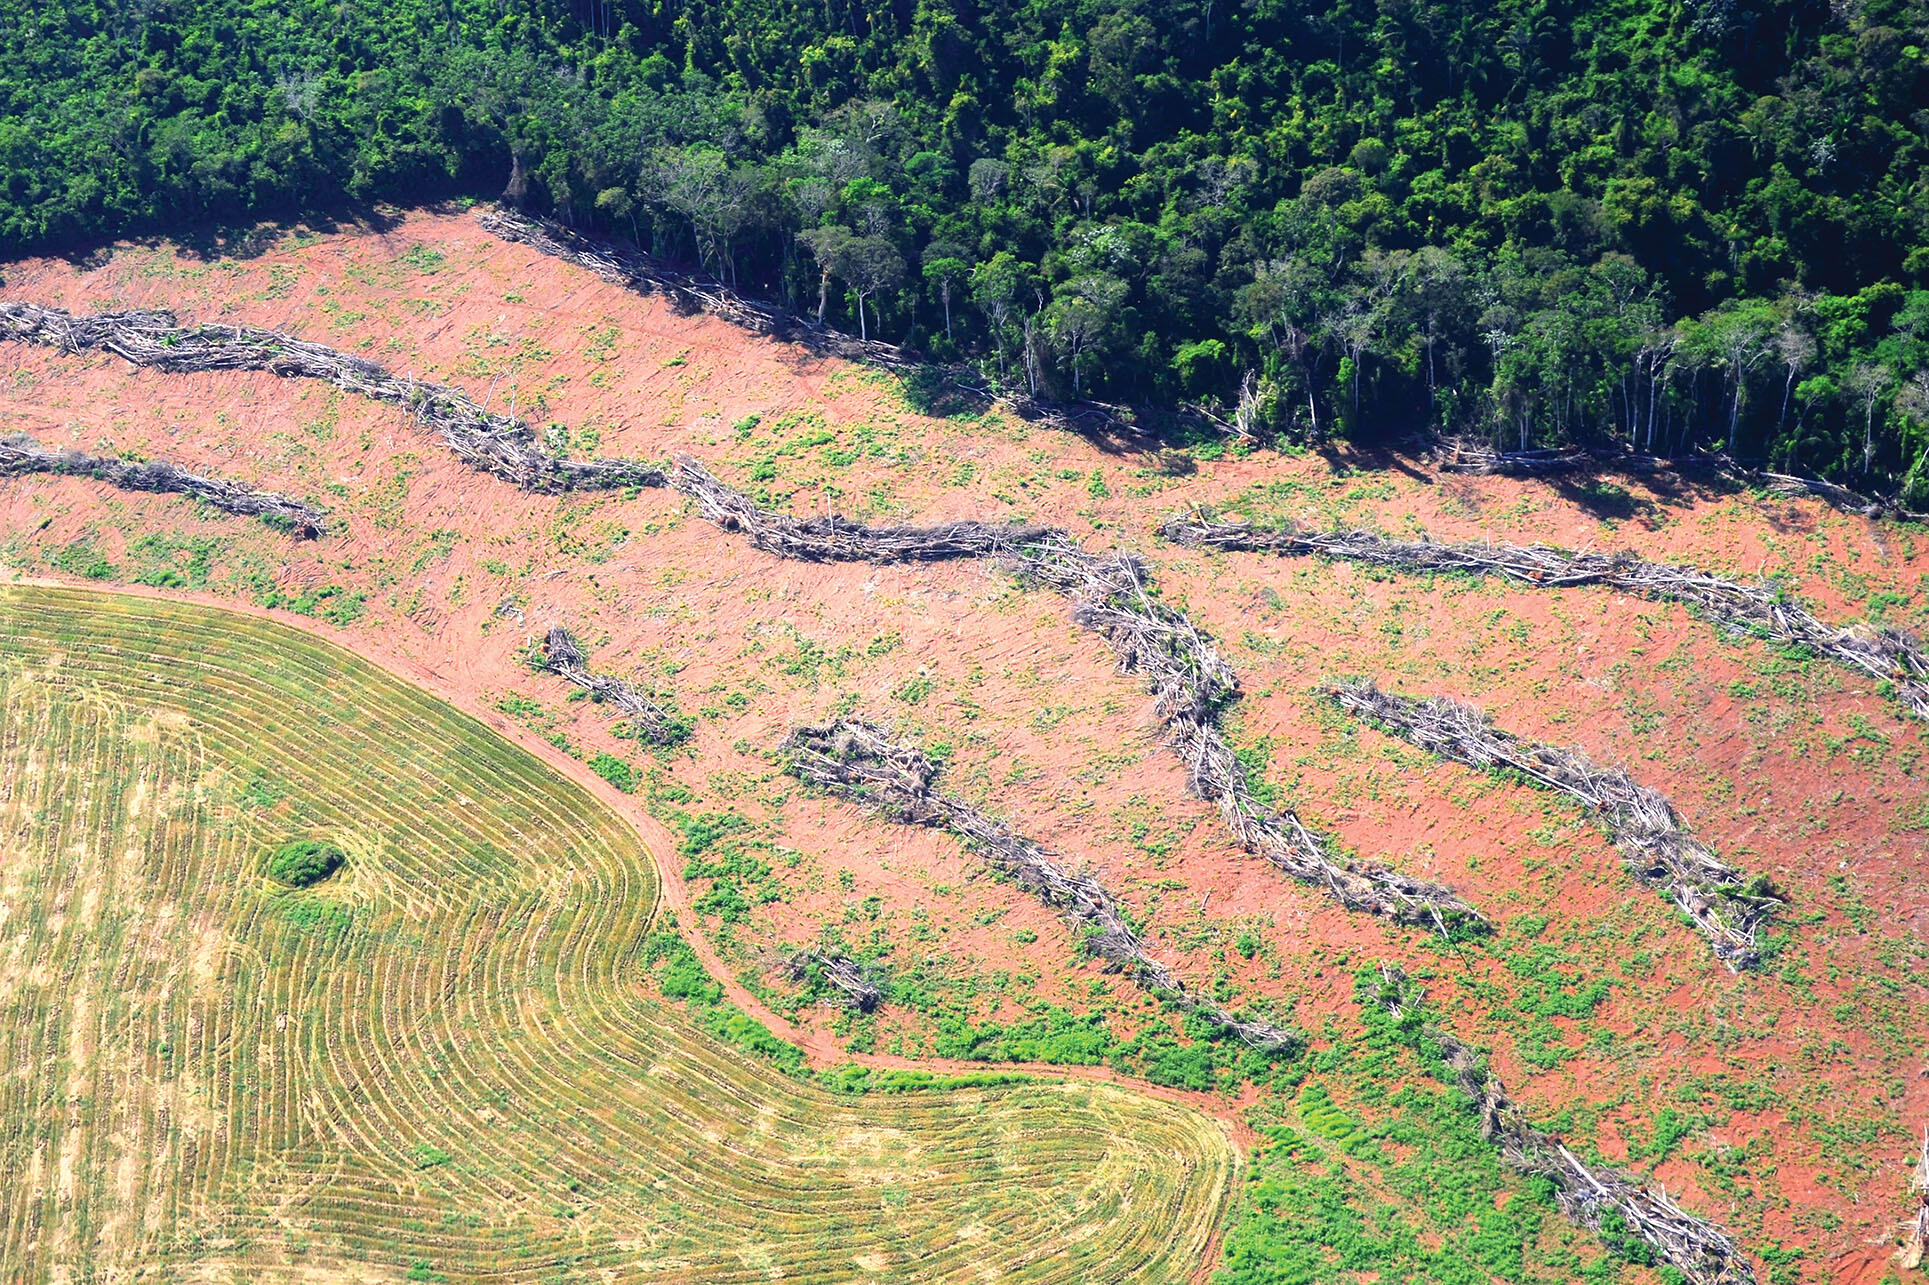 President Bolsonaro says that protected areas in the Amazon hold up development. Above, deforestation in Novo Progresso, Pará, in 2014. (Photo by Vinícius Mendonça - Ascom/Ibama.)